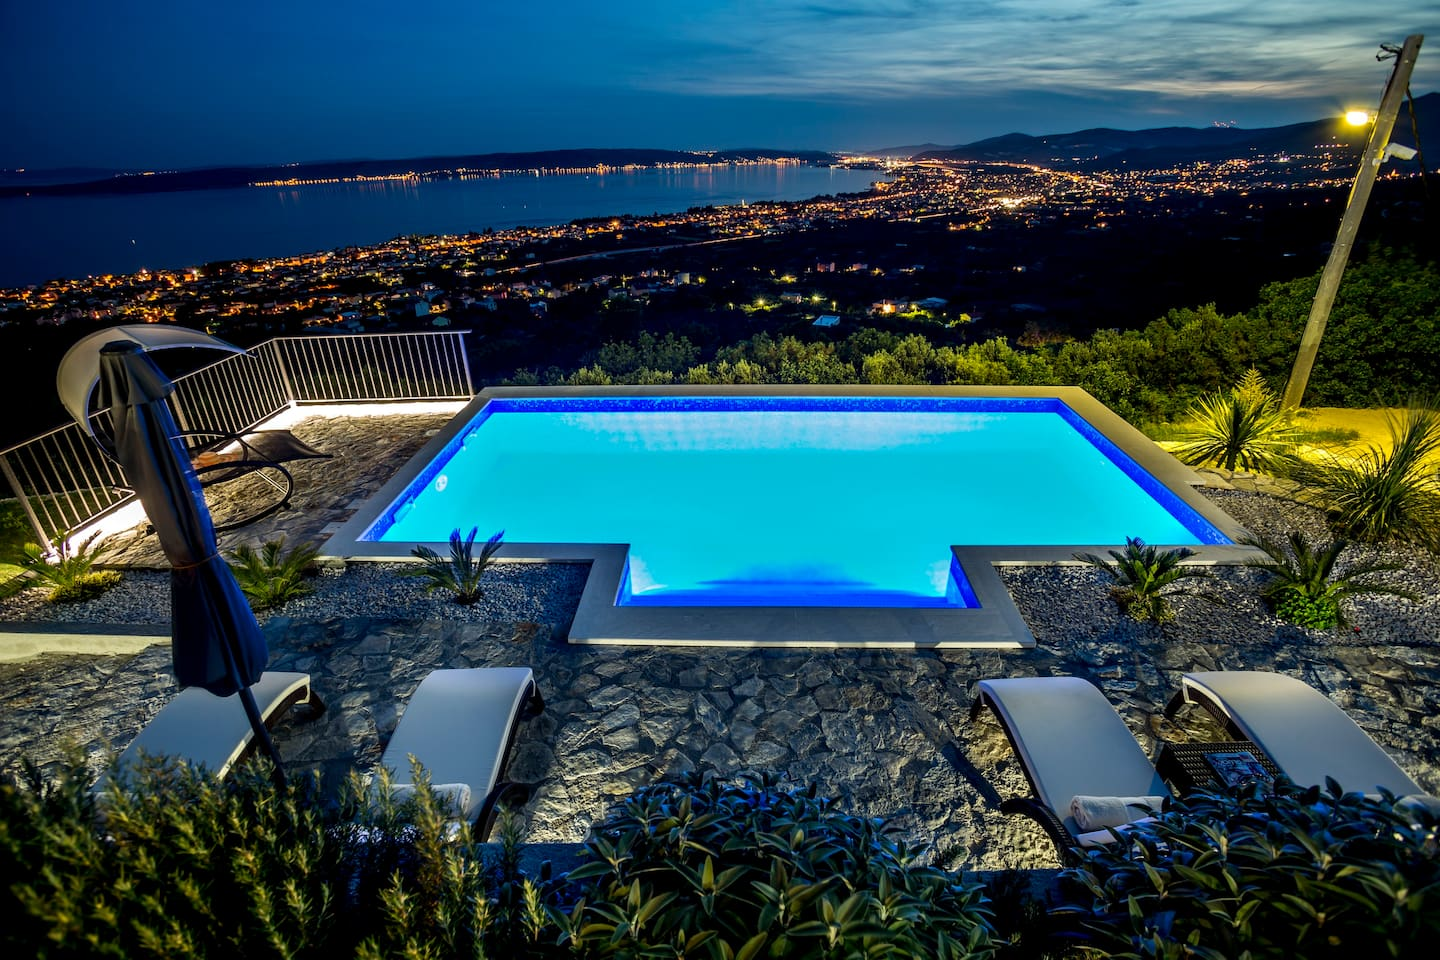 Panoramic view of the sunset and pool lights, nature provides a peaceful and relaxed atmosphere without interaction of neighbors.